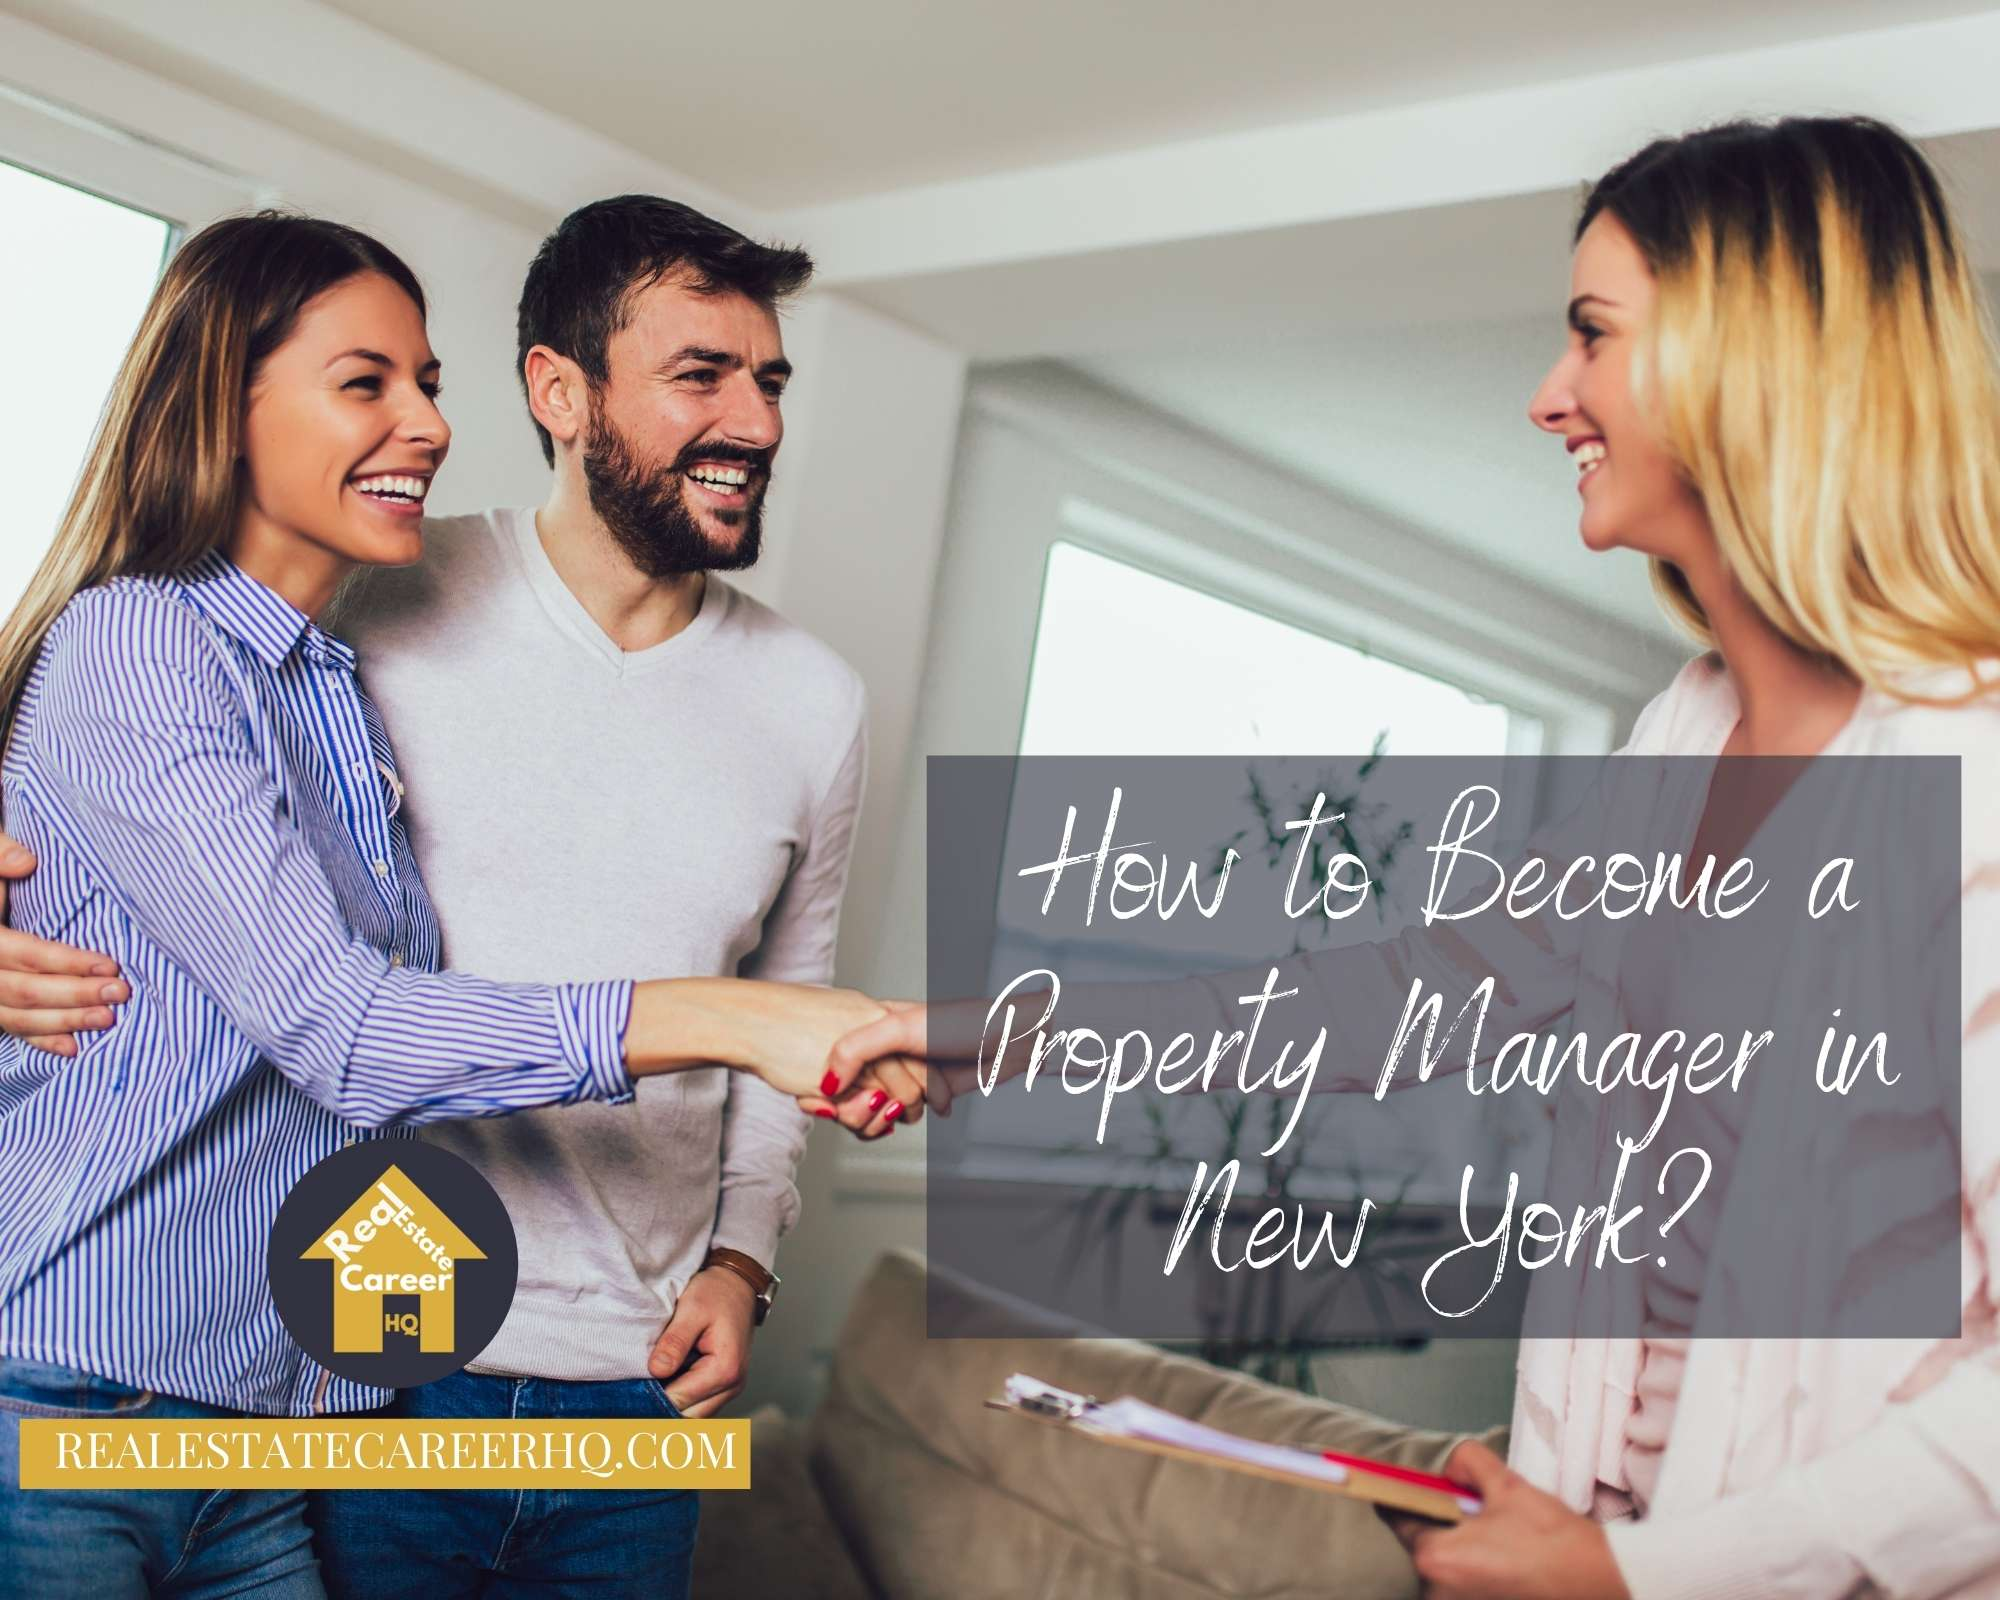 How to become a property manager in New York